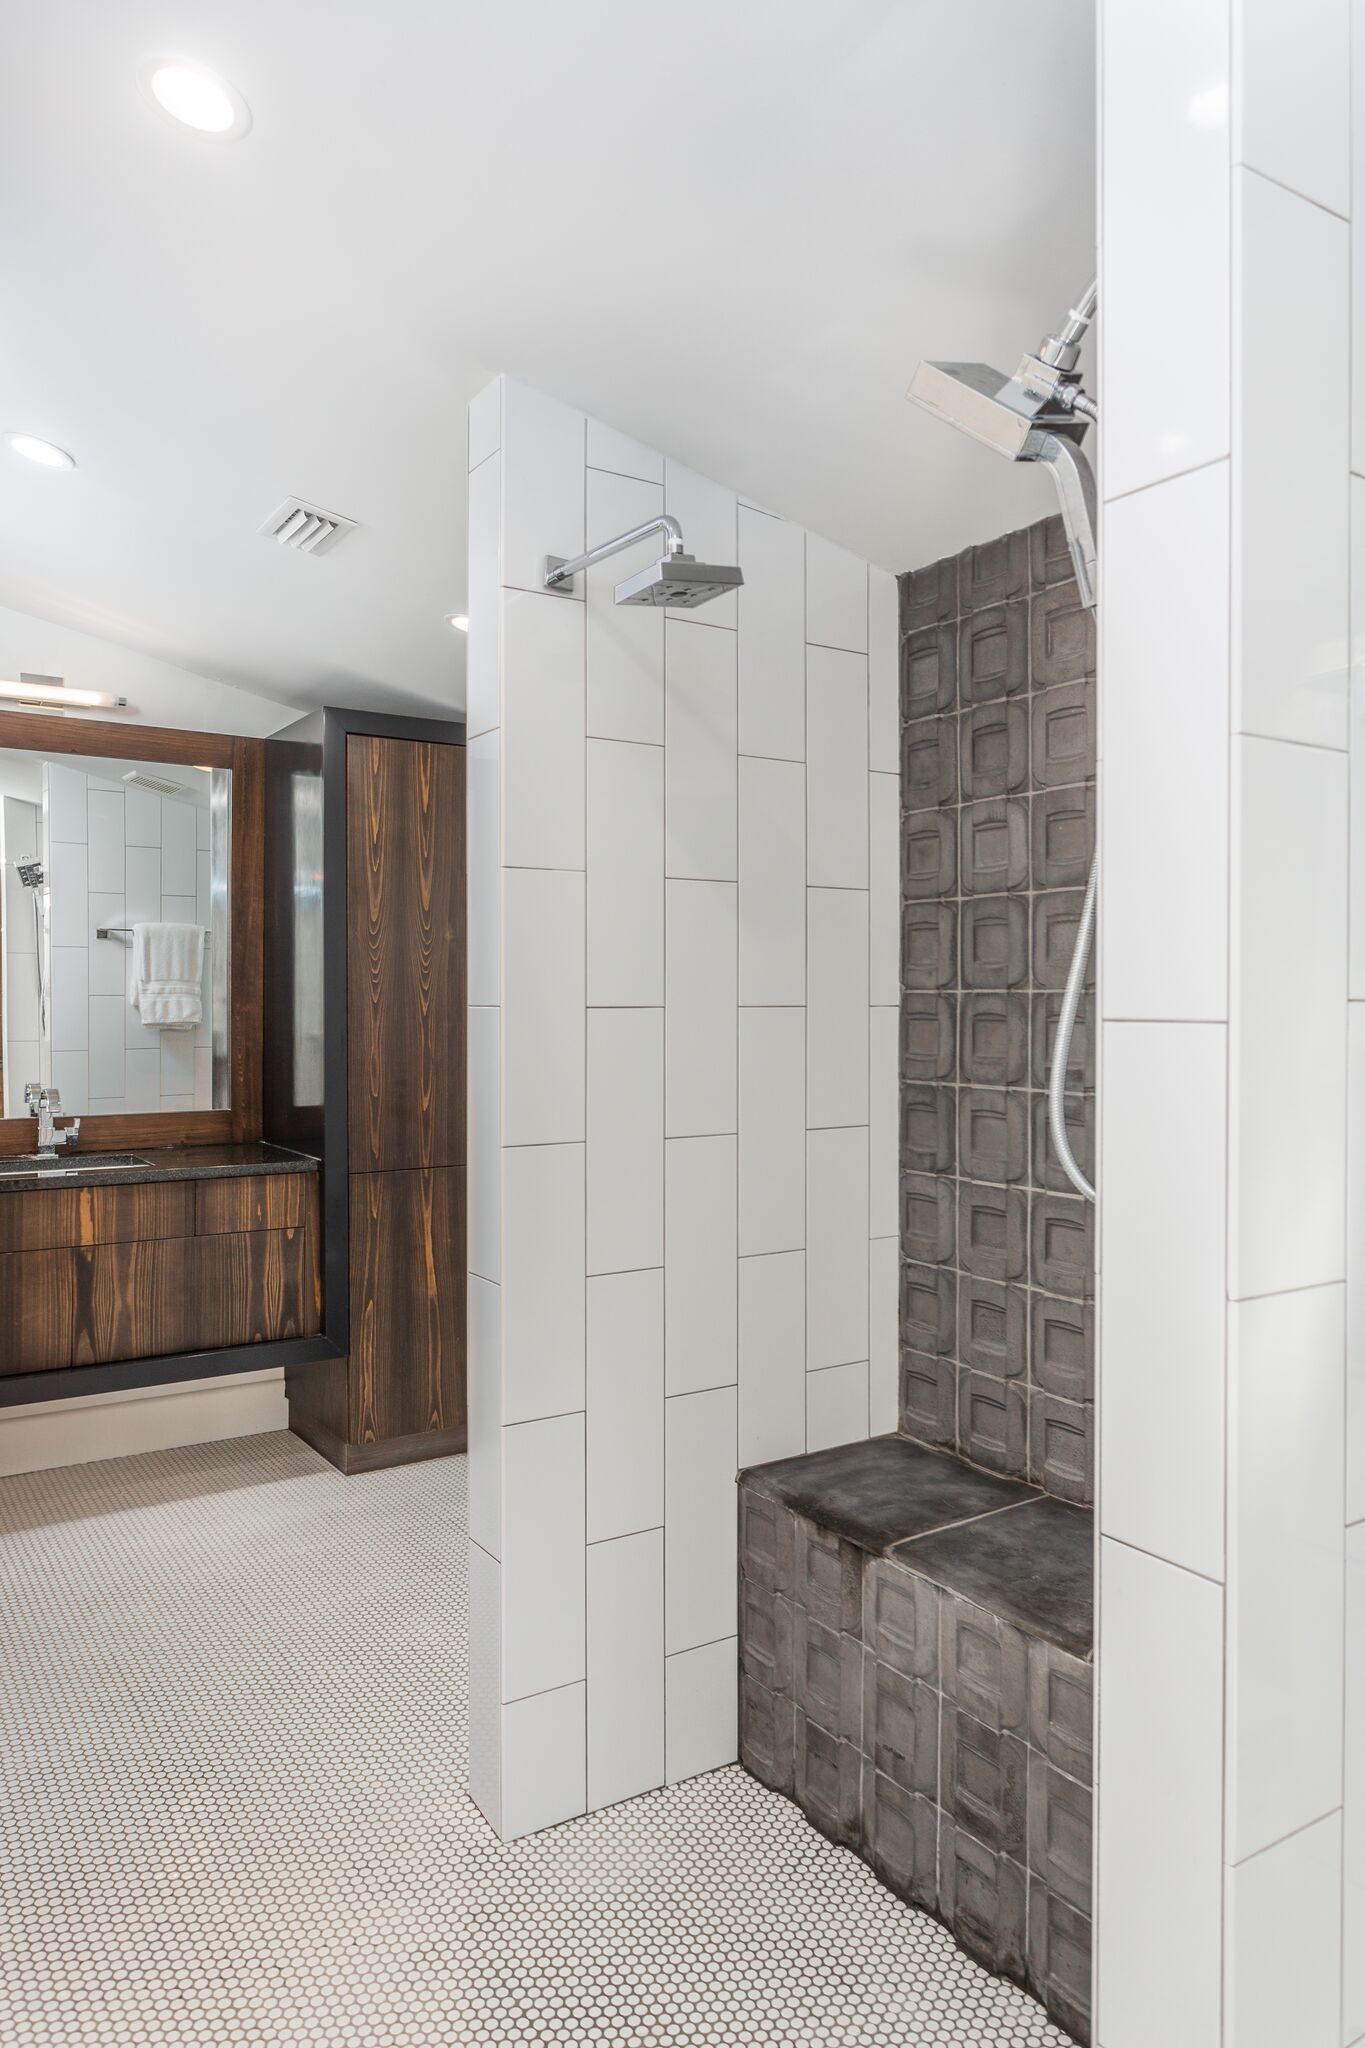 Concrete Tile in Shower